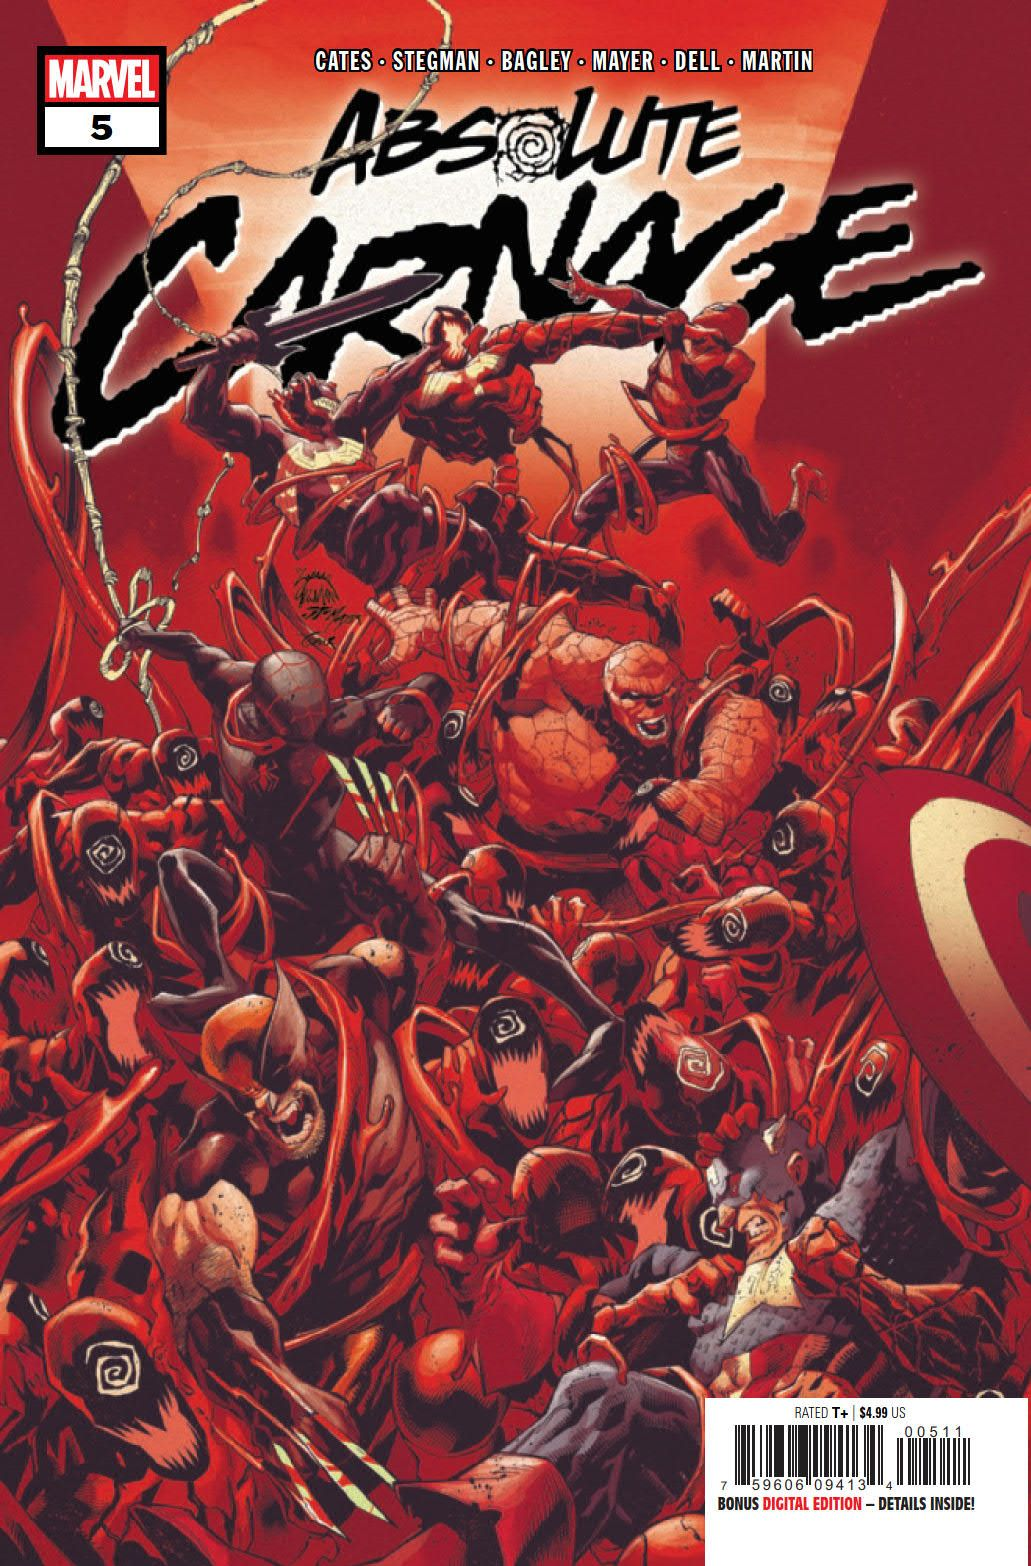 PREVIEW: Absolute Carnage #5 | CBR